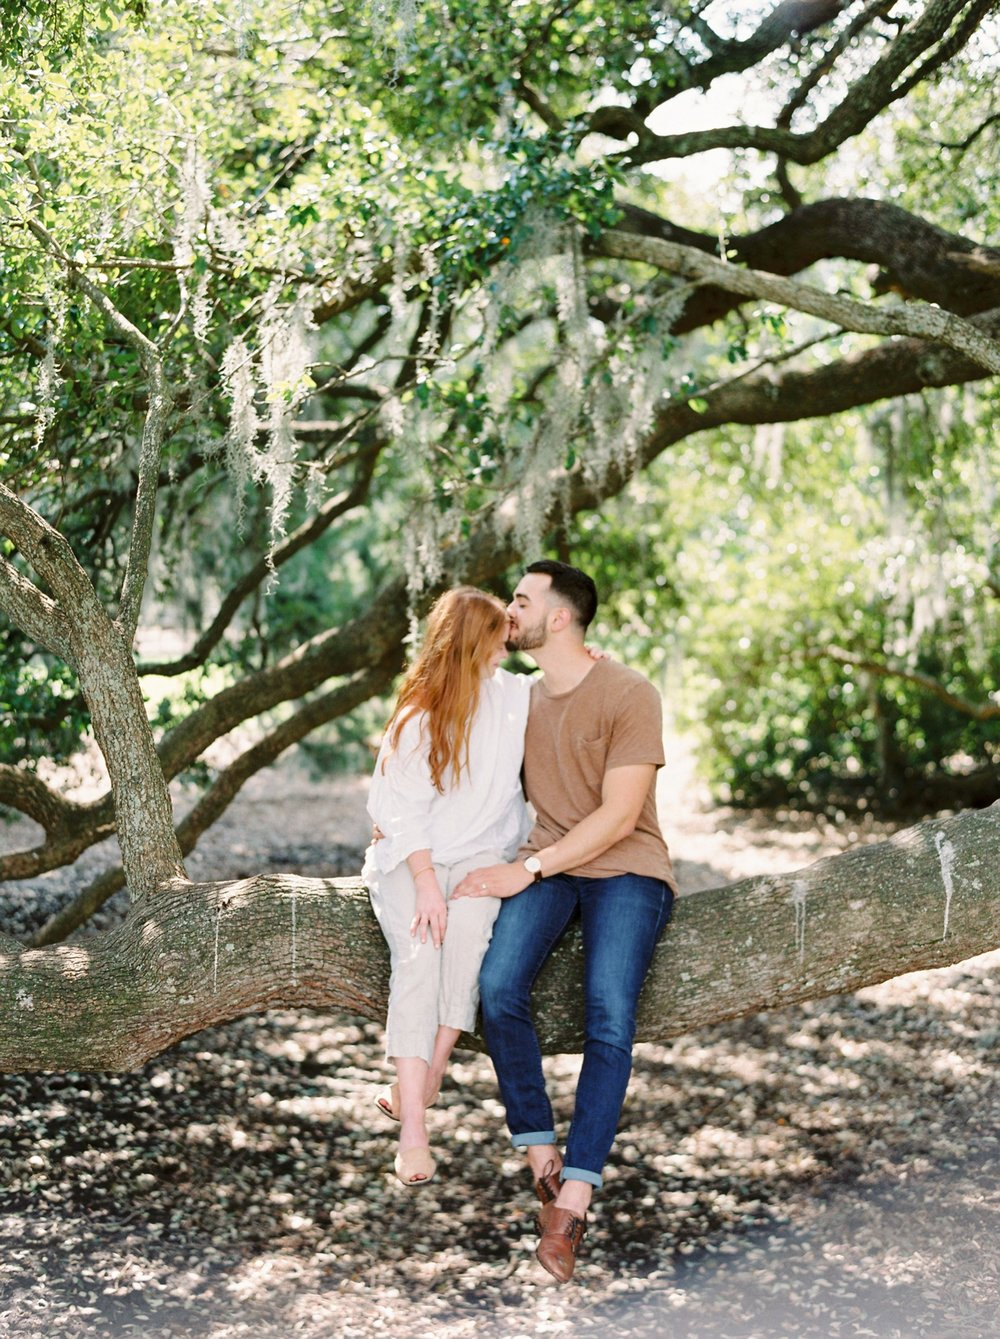 Charleston wedding photographers | charleston anniversary | Justine Milton fine art film Photography | south carolina anniversary | fine art film photography